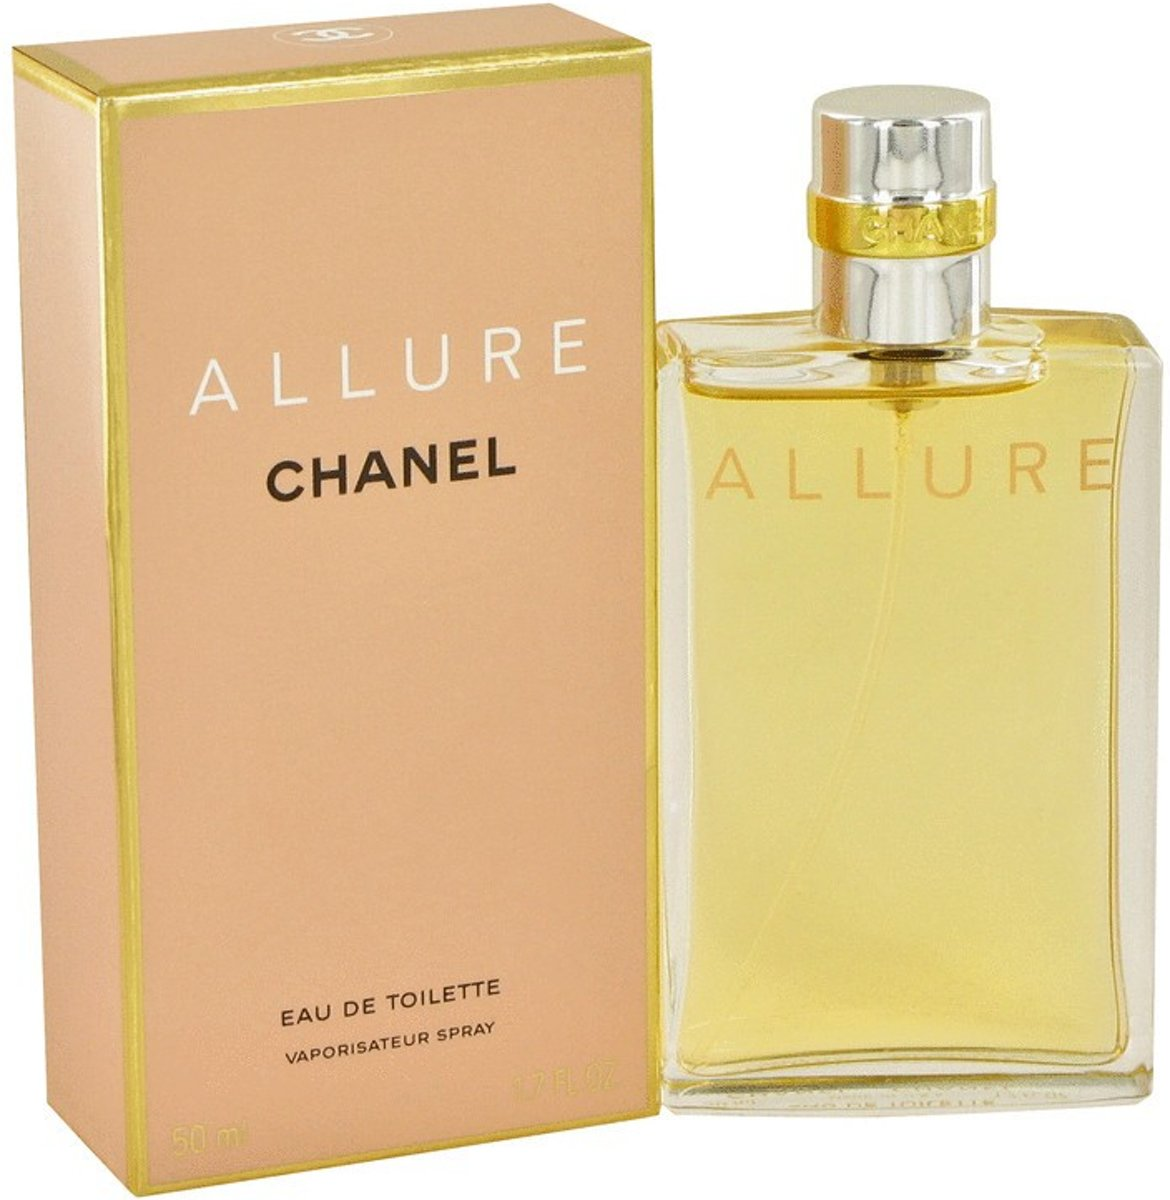 Chanel Allure - 50 ml - Eau de toilette